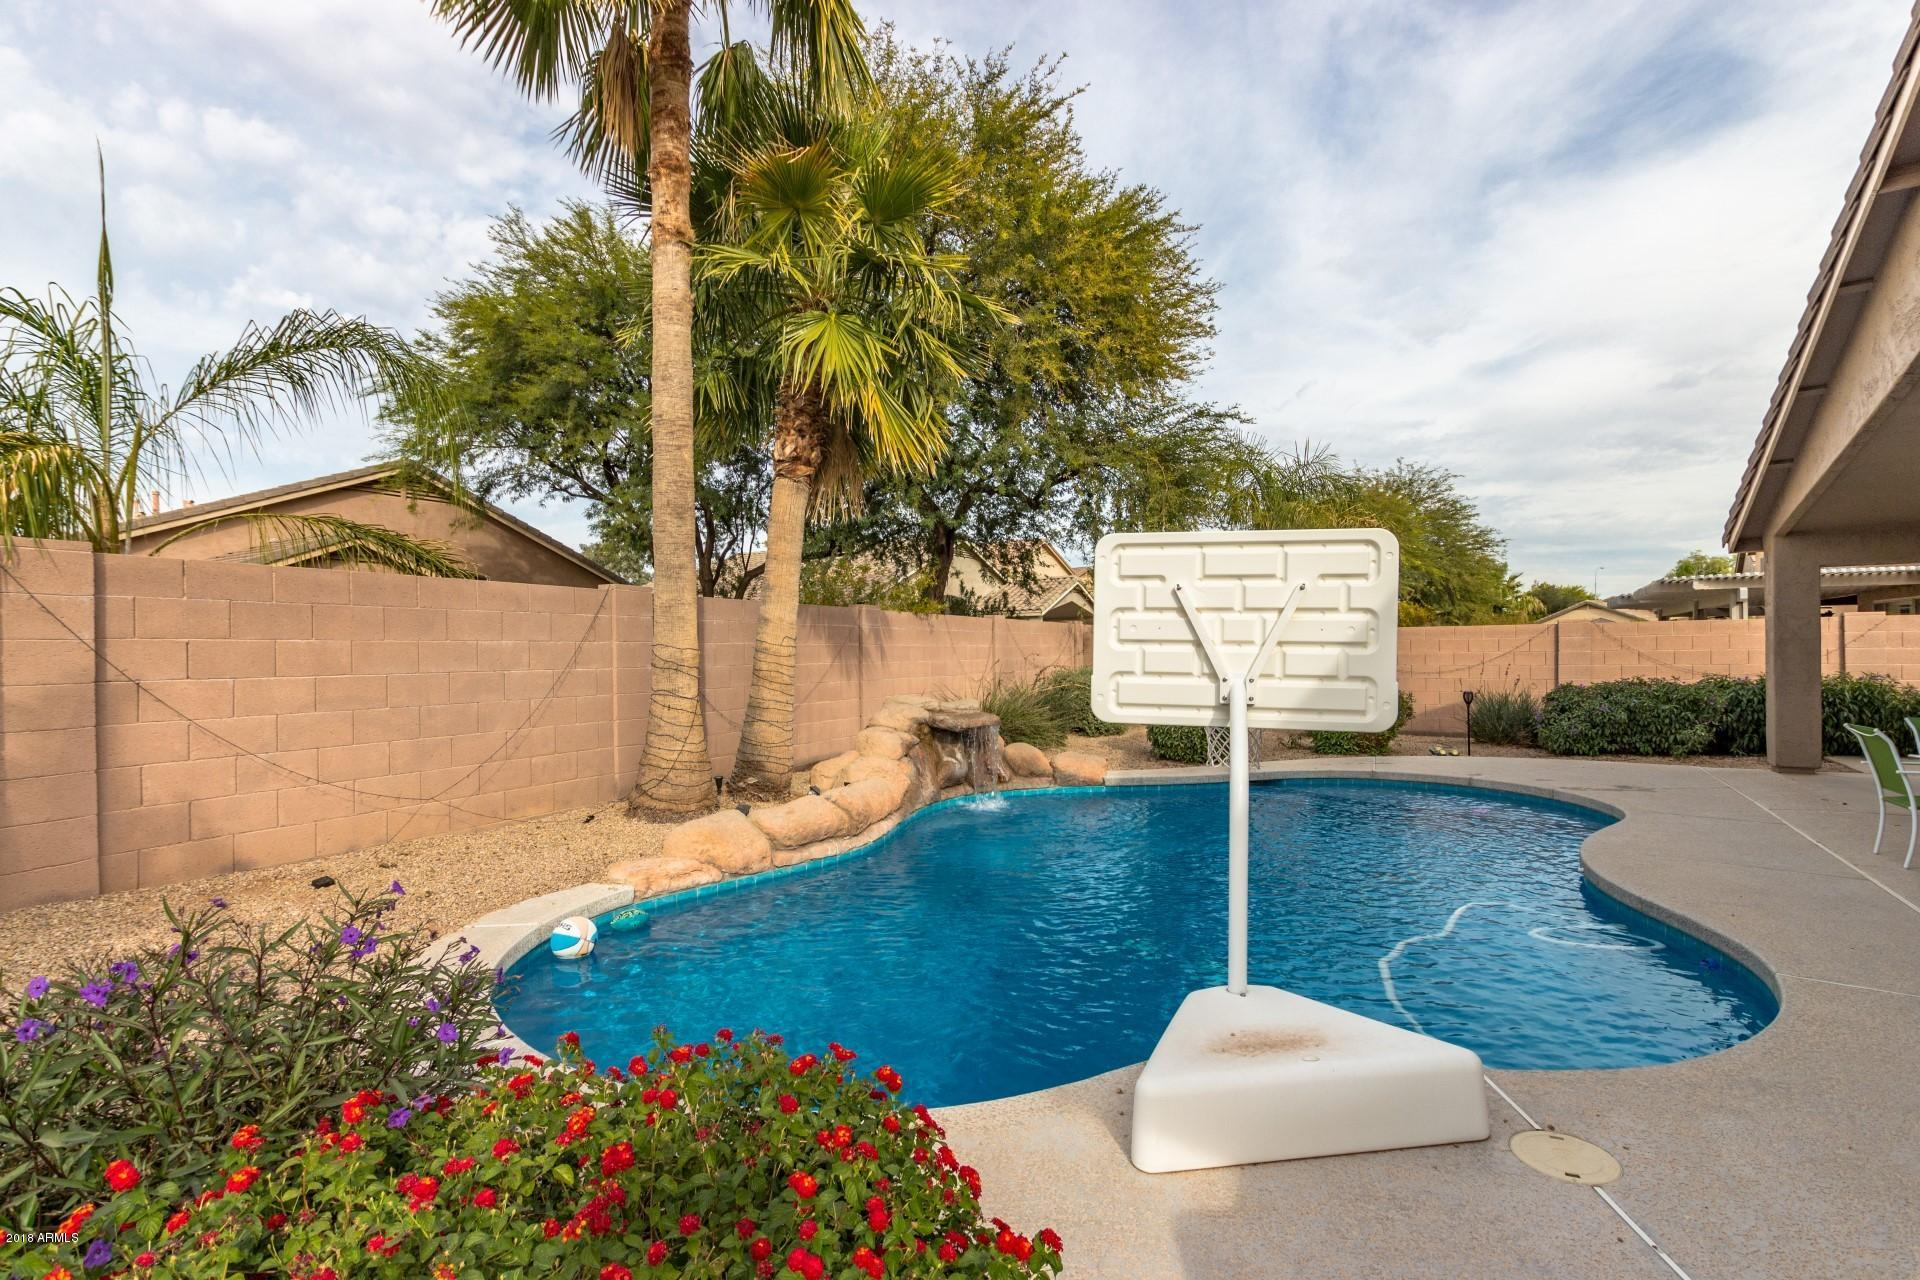 MLS 5846431 2214 E CHERRY HILLS Place, Chandler, AZ 85249 Chandler AZ Cooper Commons